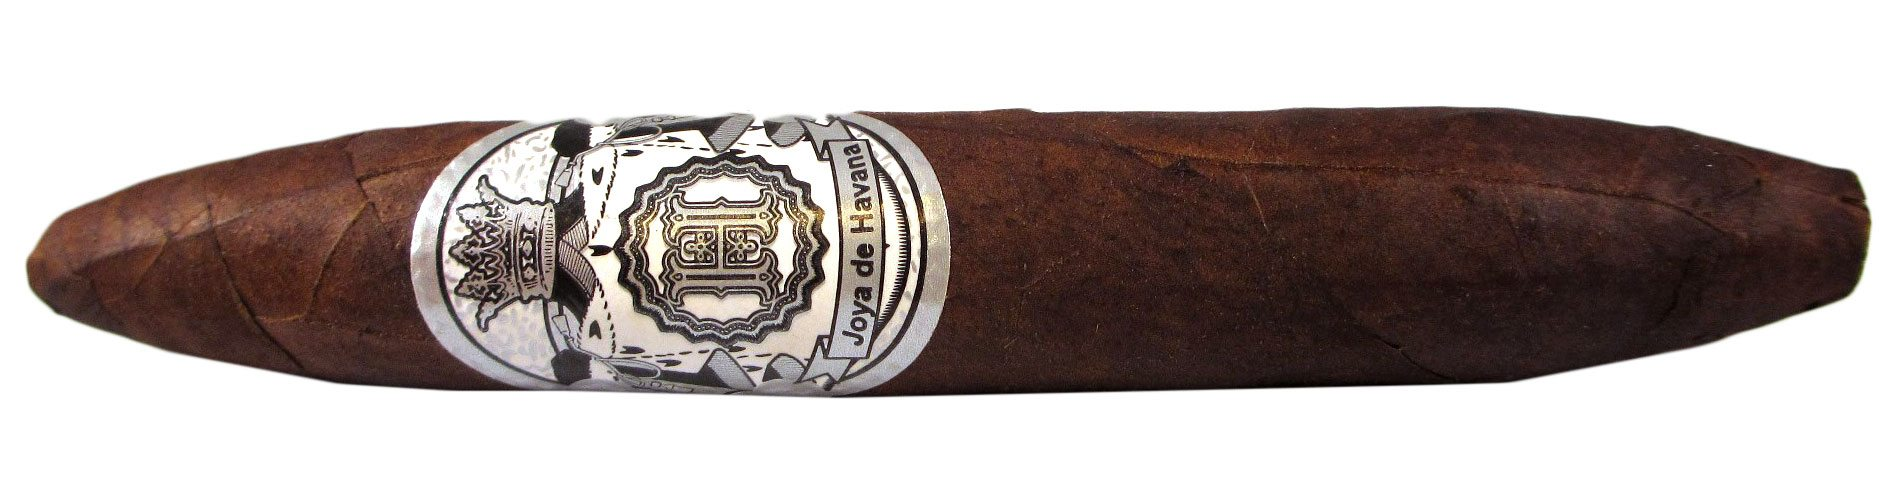 Blind Cigar Review: Cuban Stock | Joya De Havana Figurado No. 2